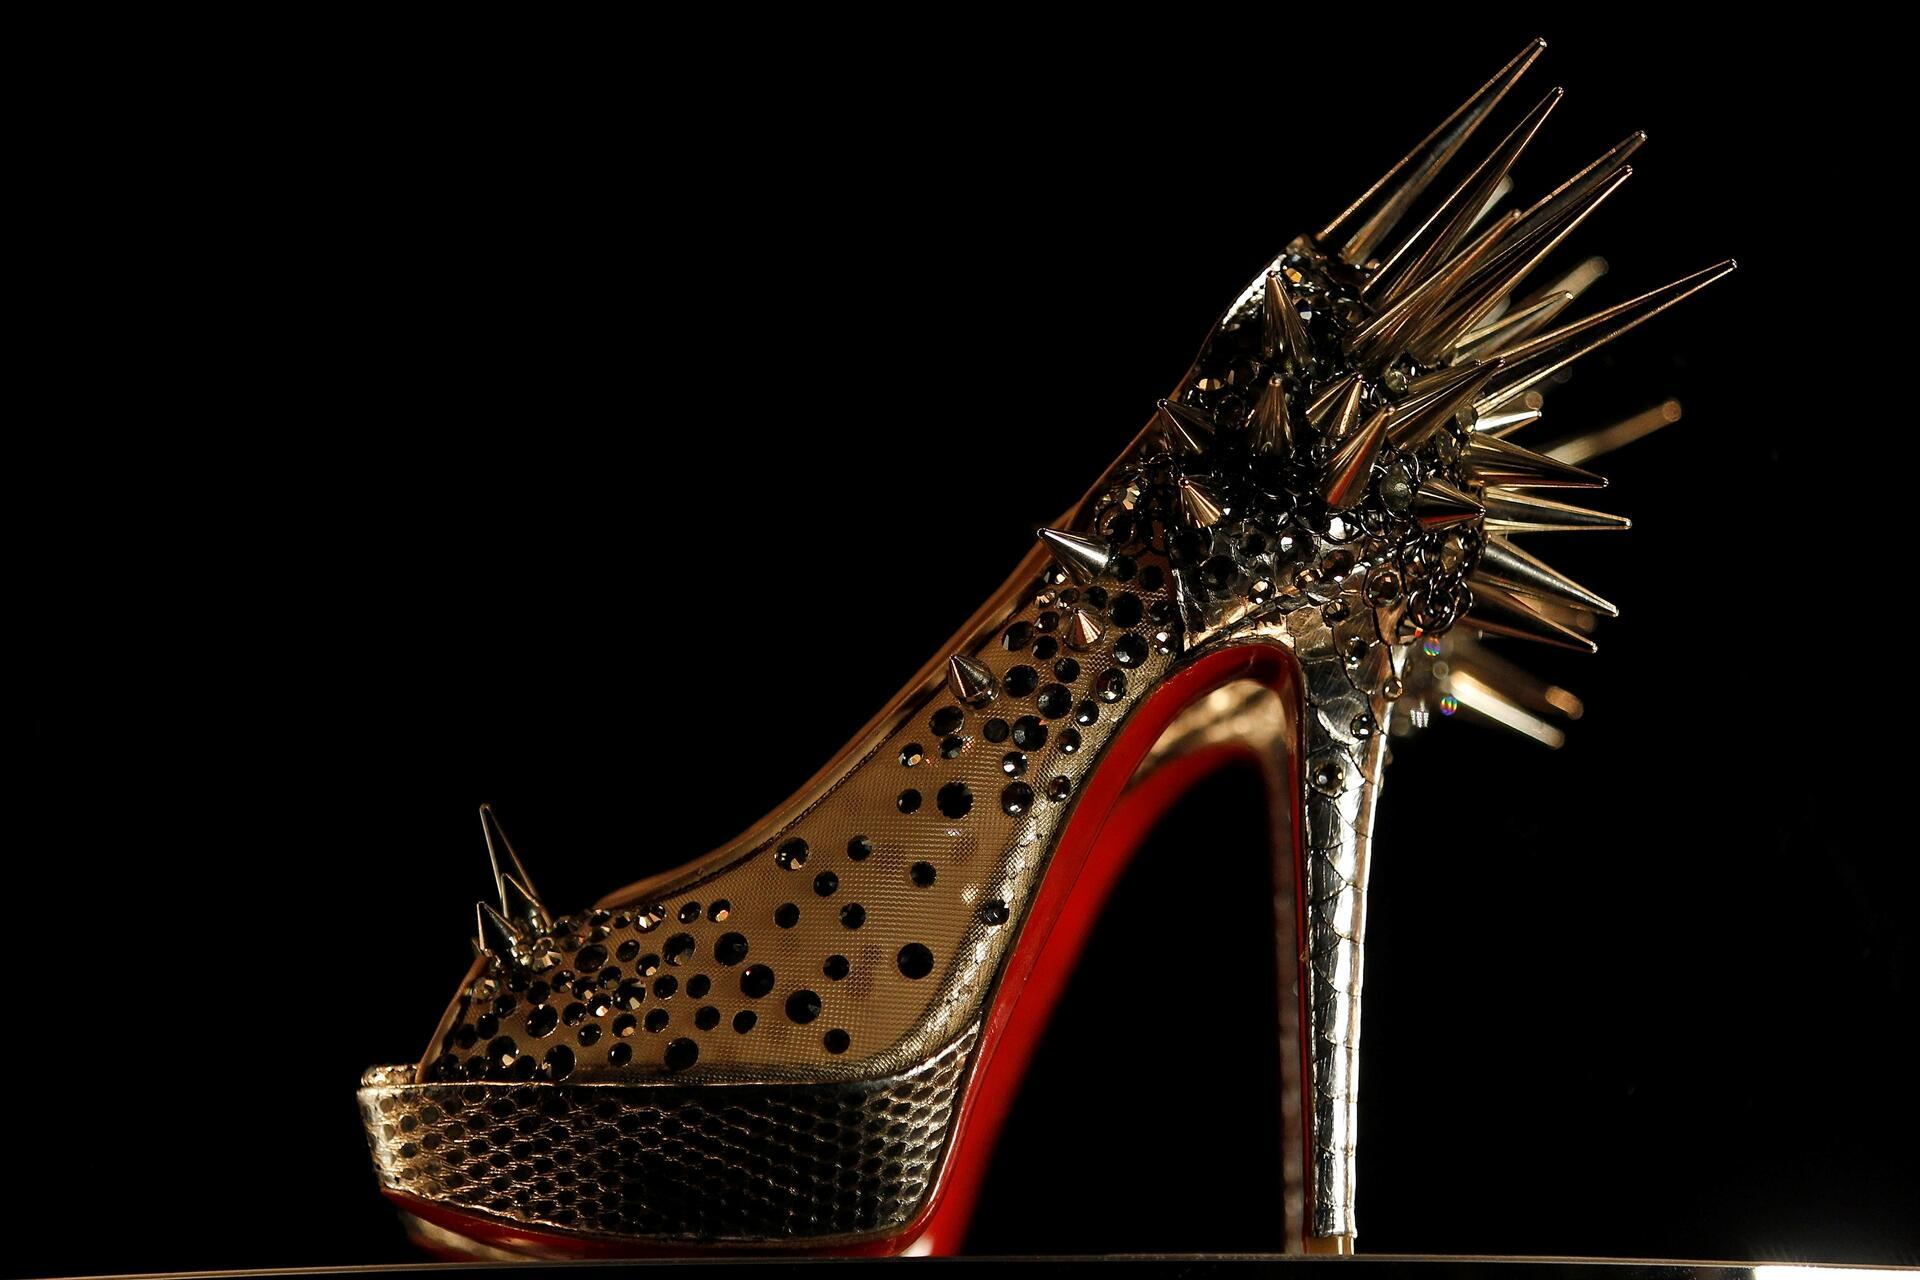 70448a76095 Louboutin wins EU court battle over red-soled shoes